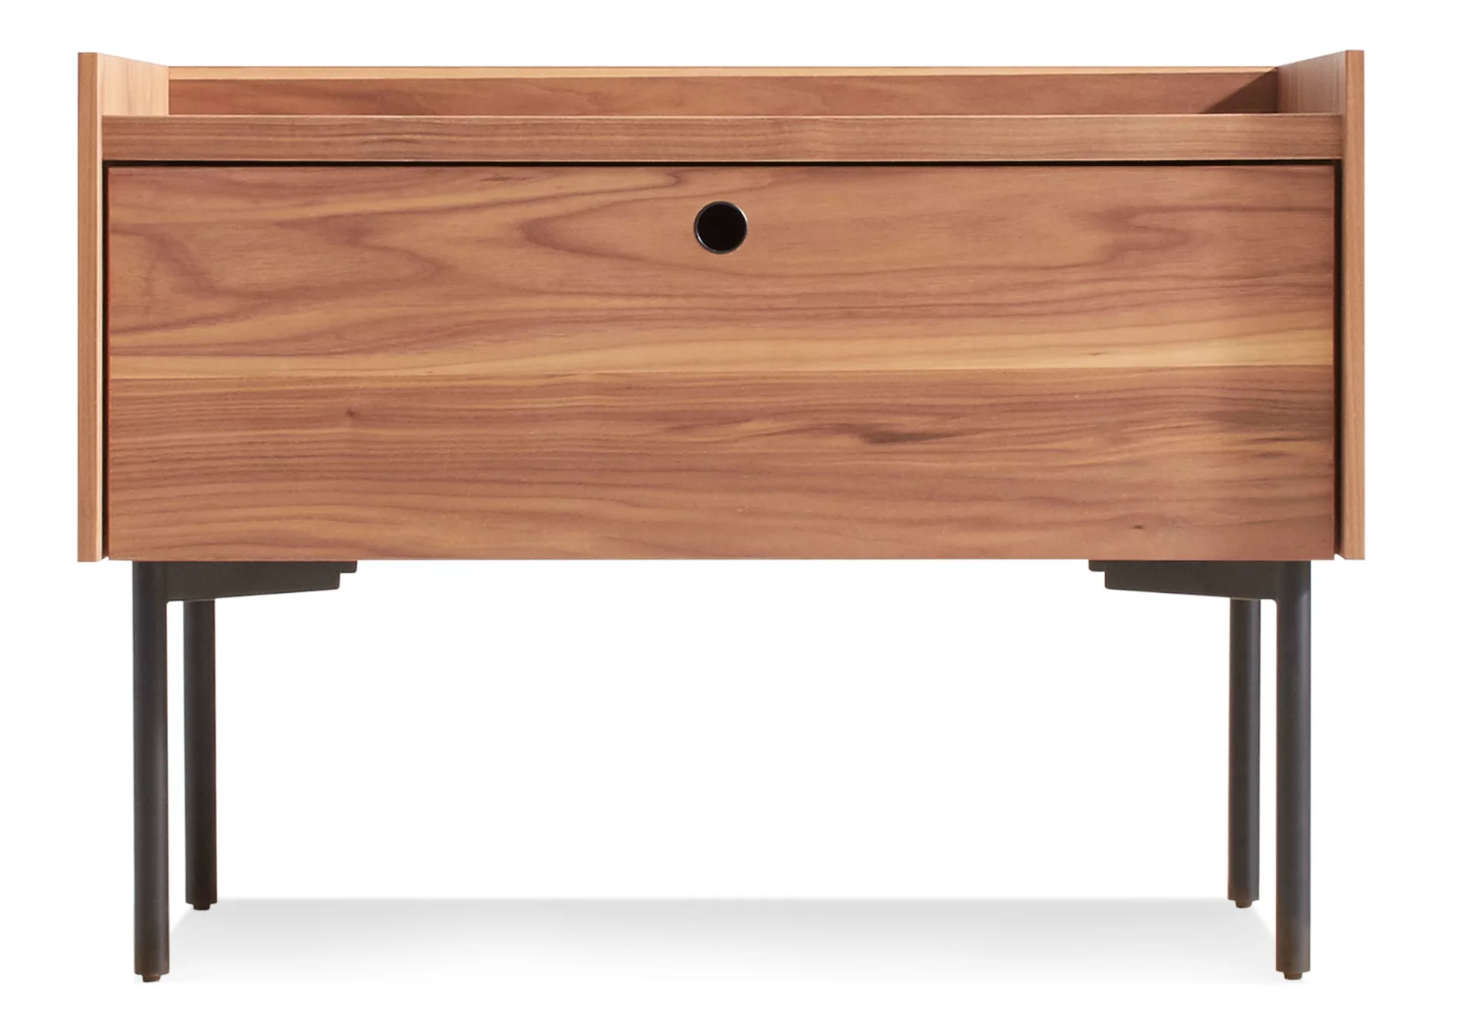 Blu Dot Peek Nightstand from  Blu Dot , our go-to furniture store, $799.